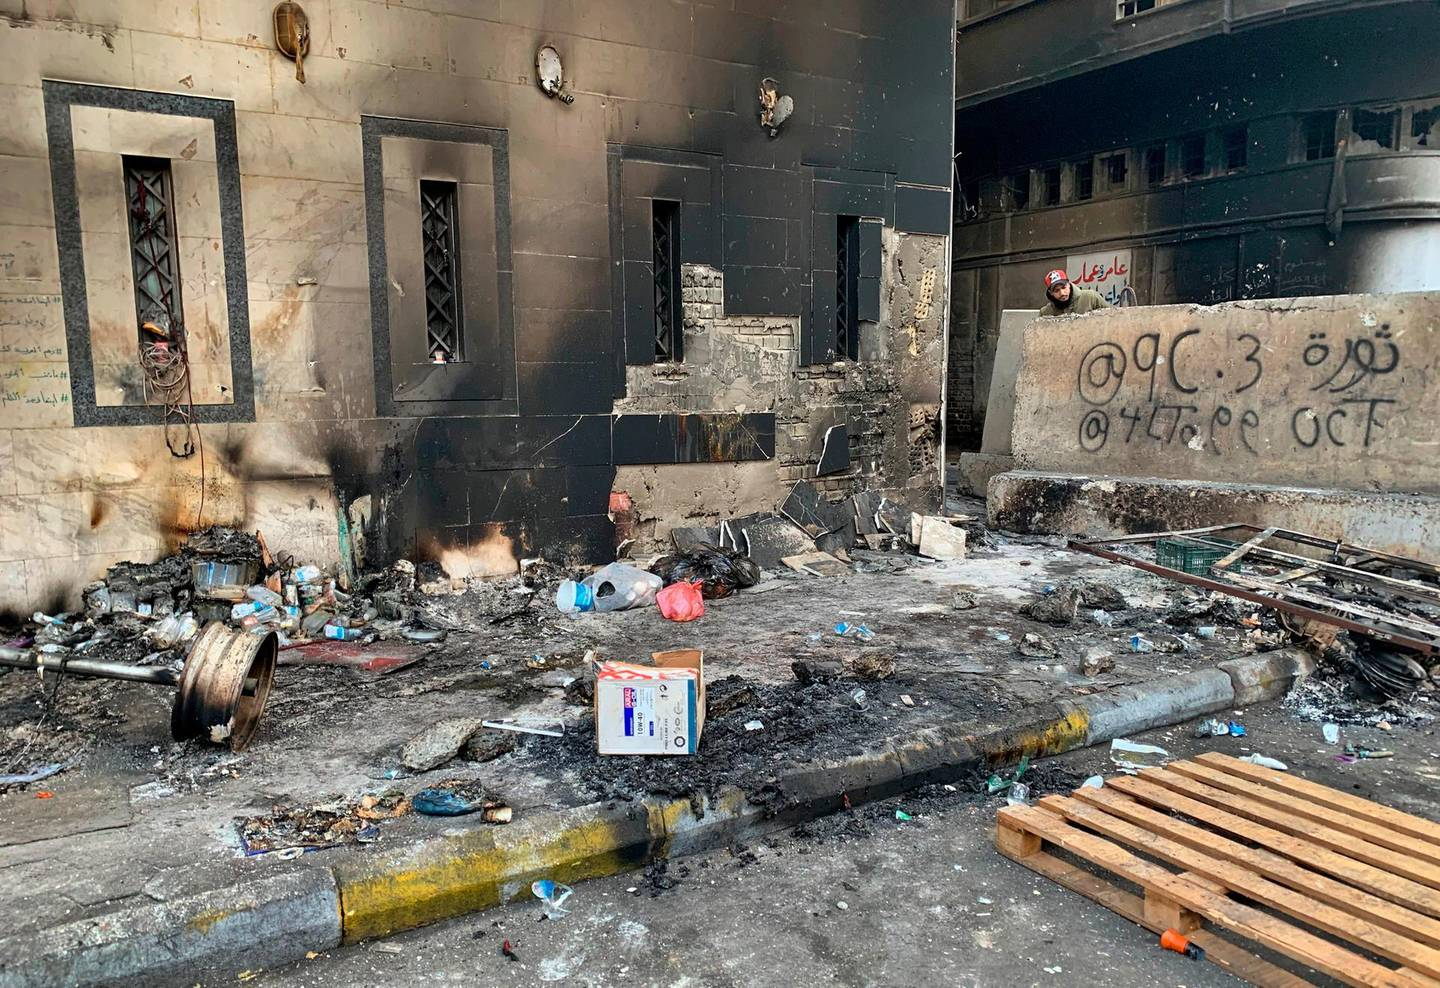 A protester checks the site of a gunmen attack in Baghdad, Iraq, Saturday, Dec. 7, 2019. Gunmen in cars opened fire Friday in Baghdad's Khilani square, killing and wounding scores of people. (AP Photo/Ali Abdul Hassan)